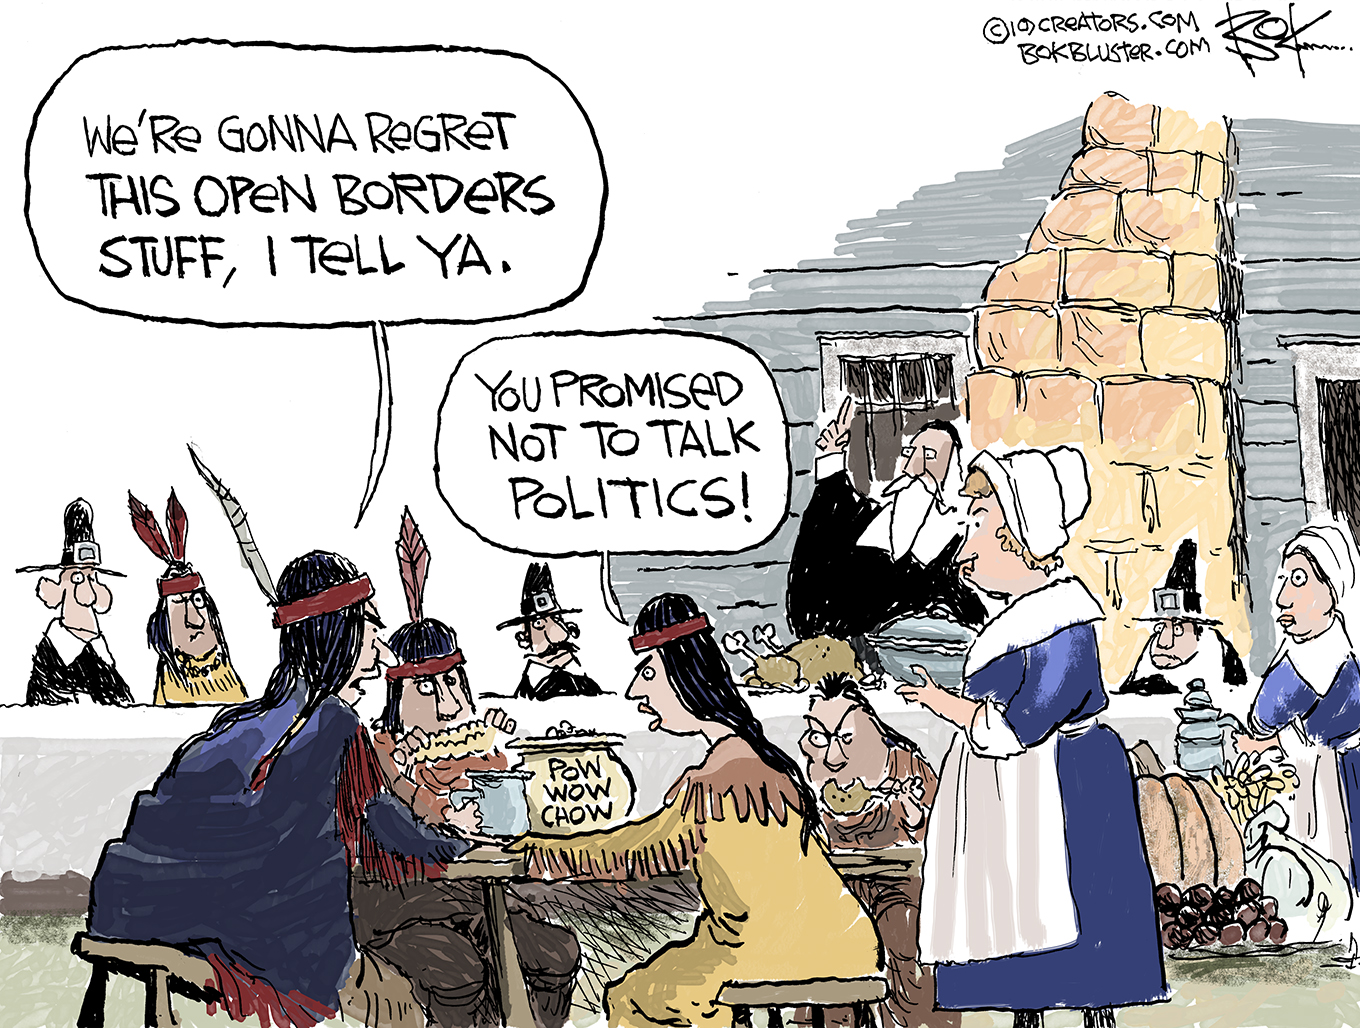 thanksgiving, politics, open borders , immigration